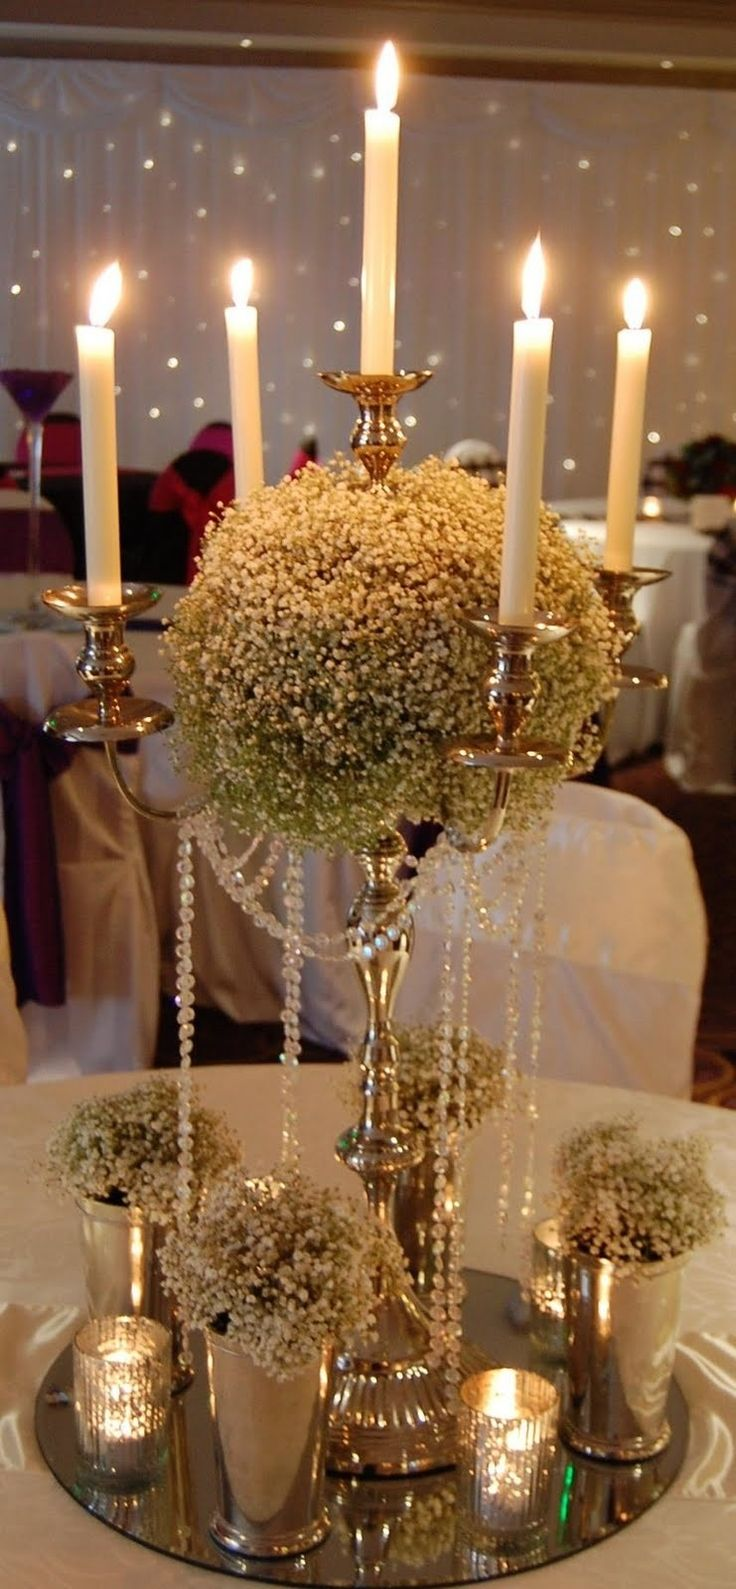 Best images about candelabra centerpieces on pinterest